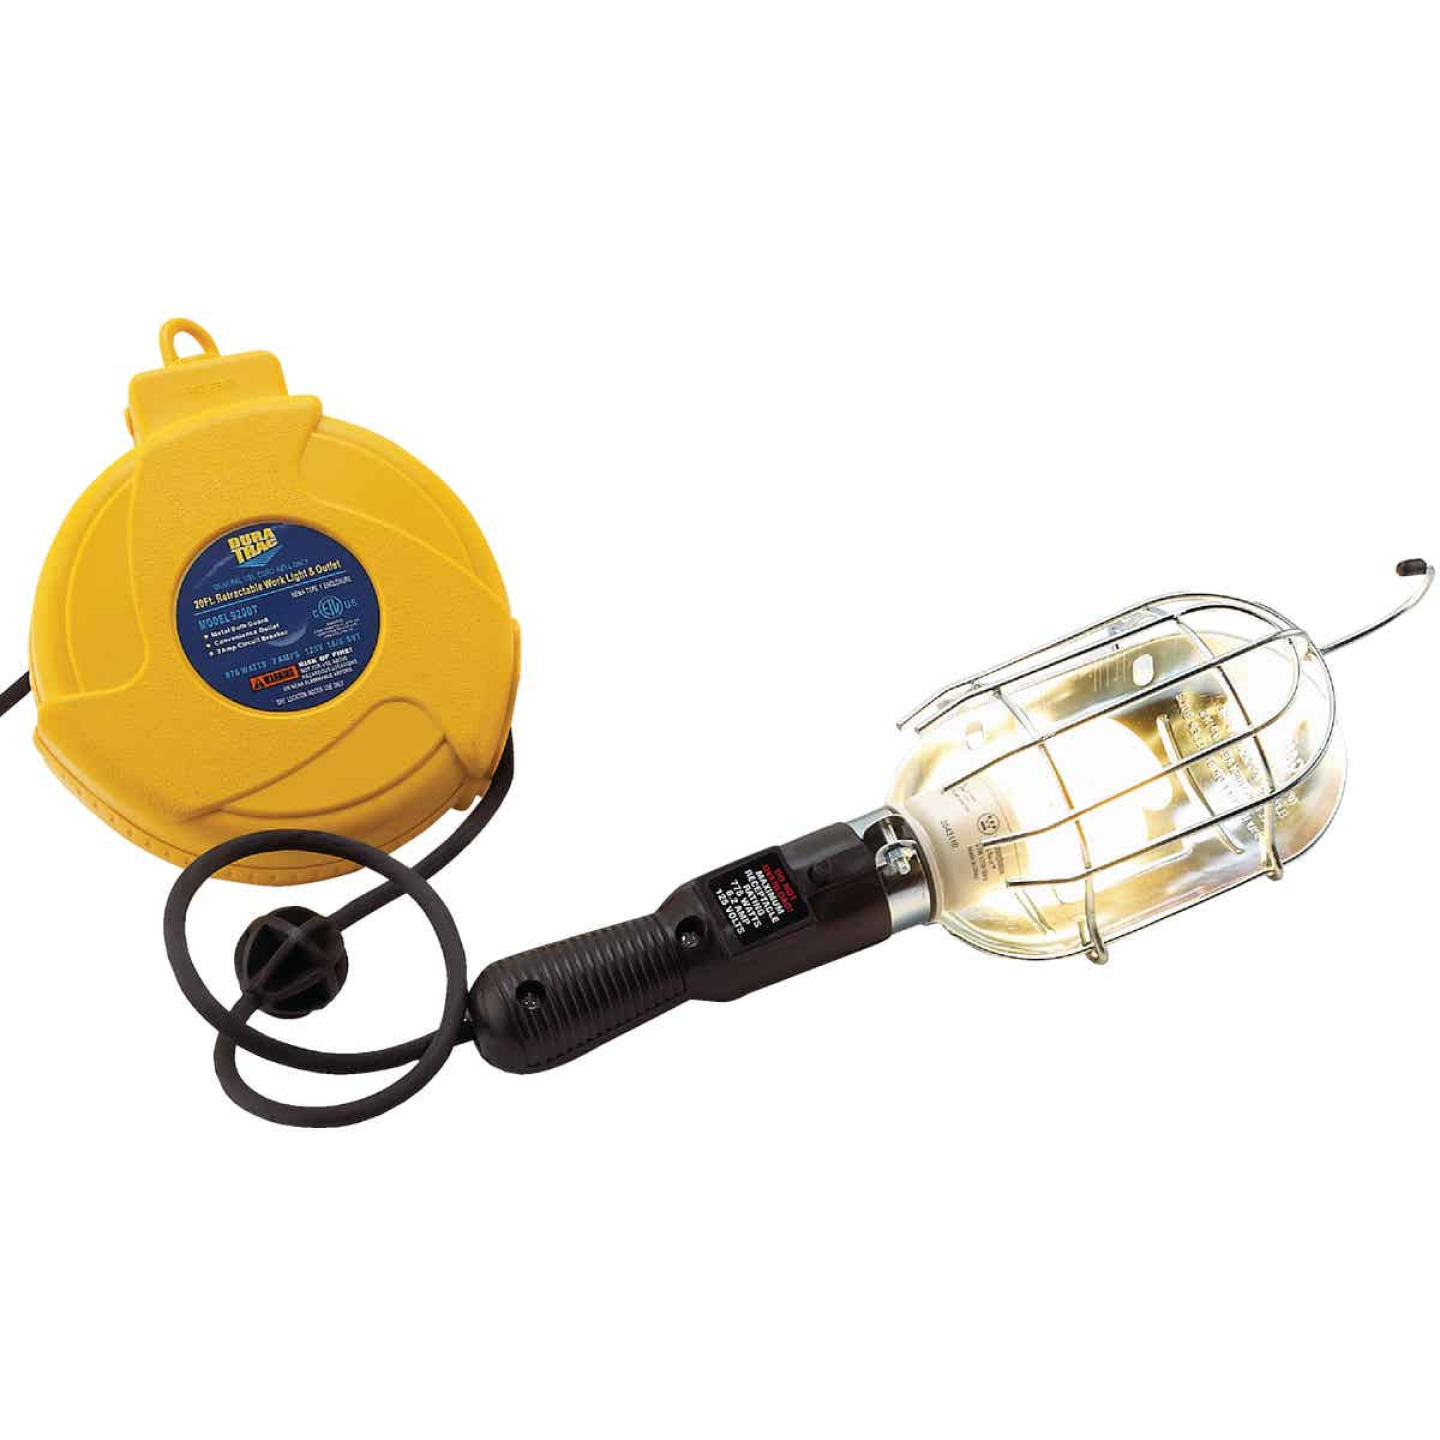 Alert Stamping 75W Incandescent Trouble Light with 20 Ft. Power Cord Image 4